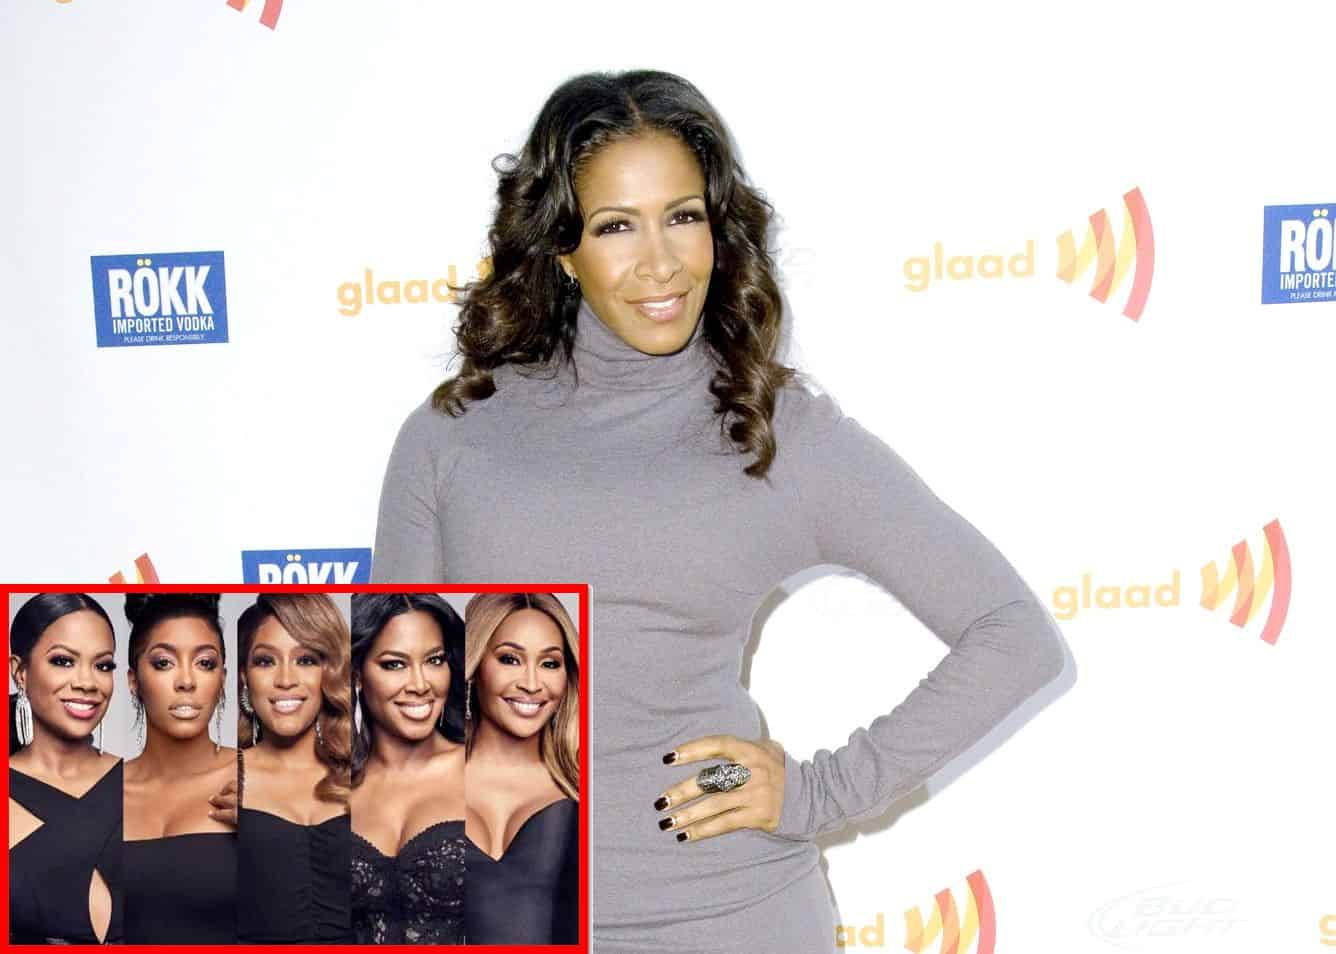 REPORT: Sheree Whitfield is Returning to RHOA as 3 Cast Members Get Axed, Find Out Who as Production Scrambles to Find New Women